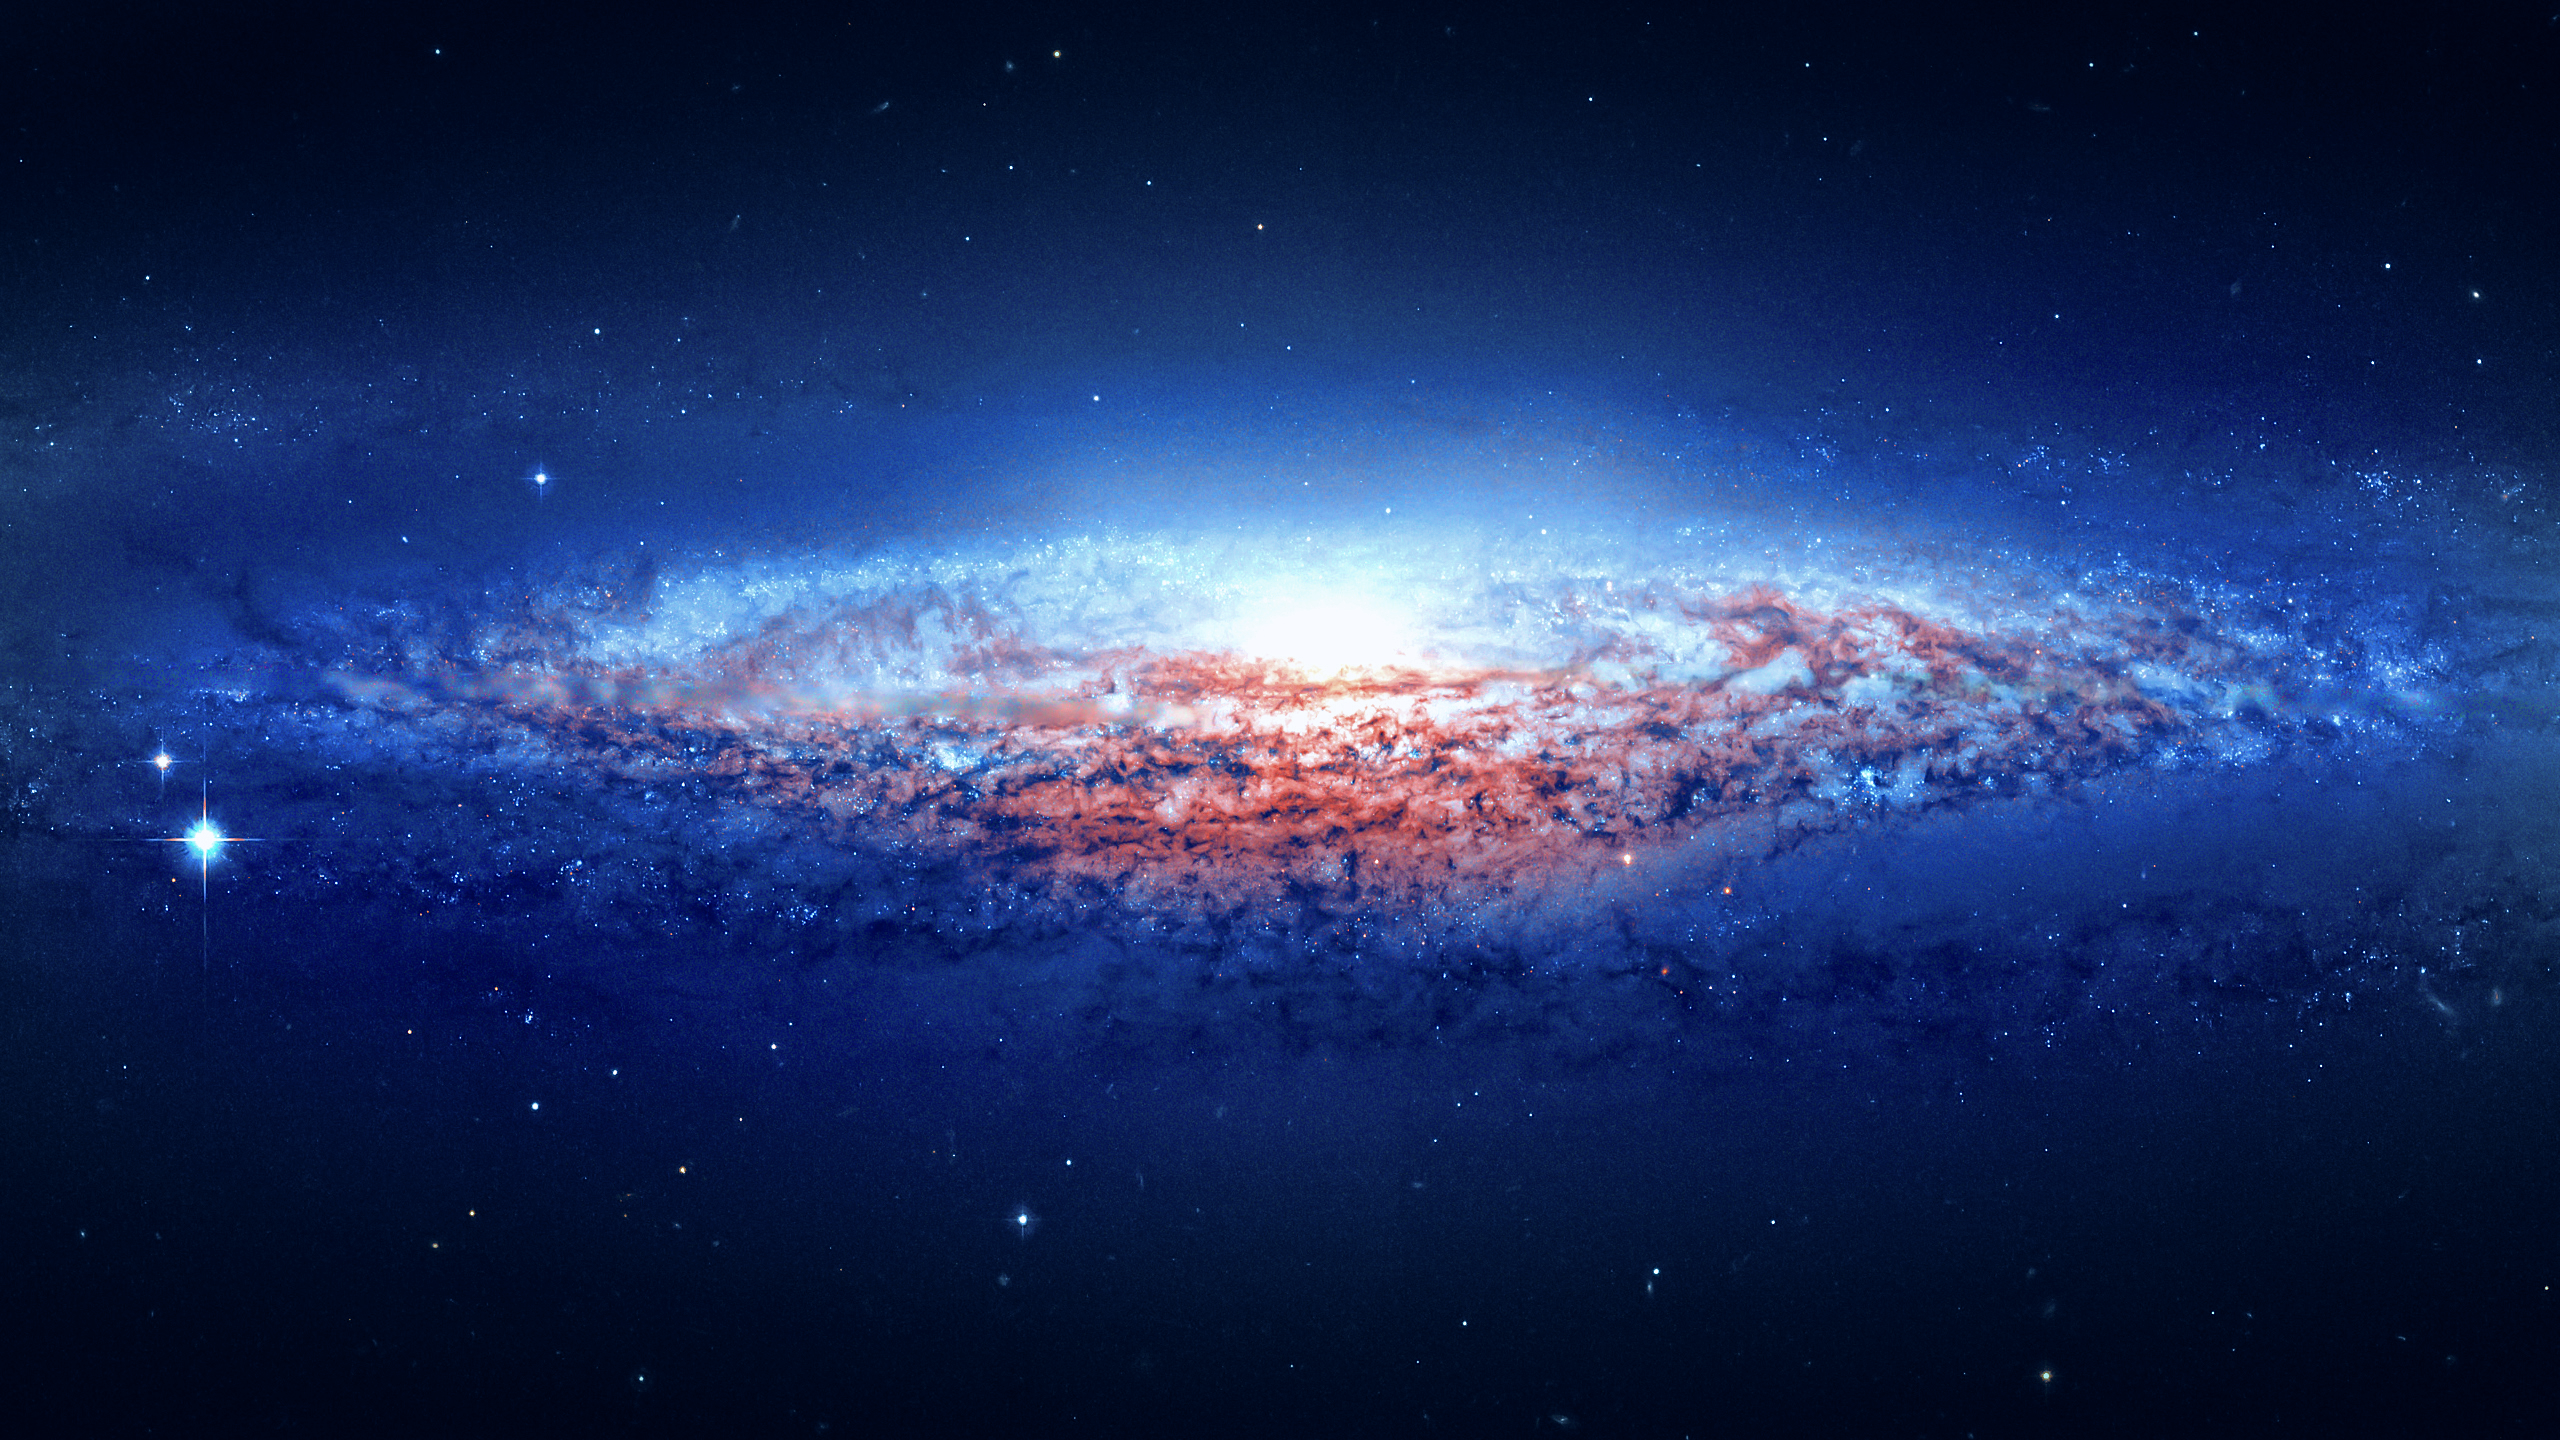 Cool galaxy wallpaper wallpapersafari for Sfondi galassie hd